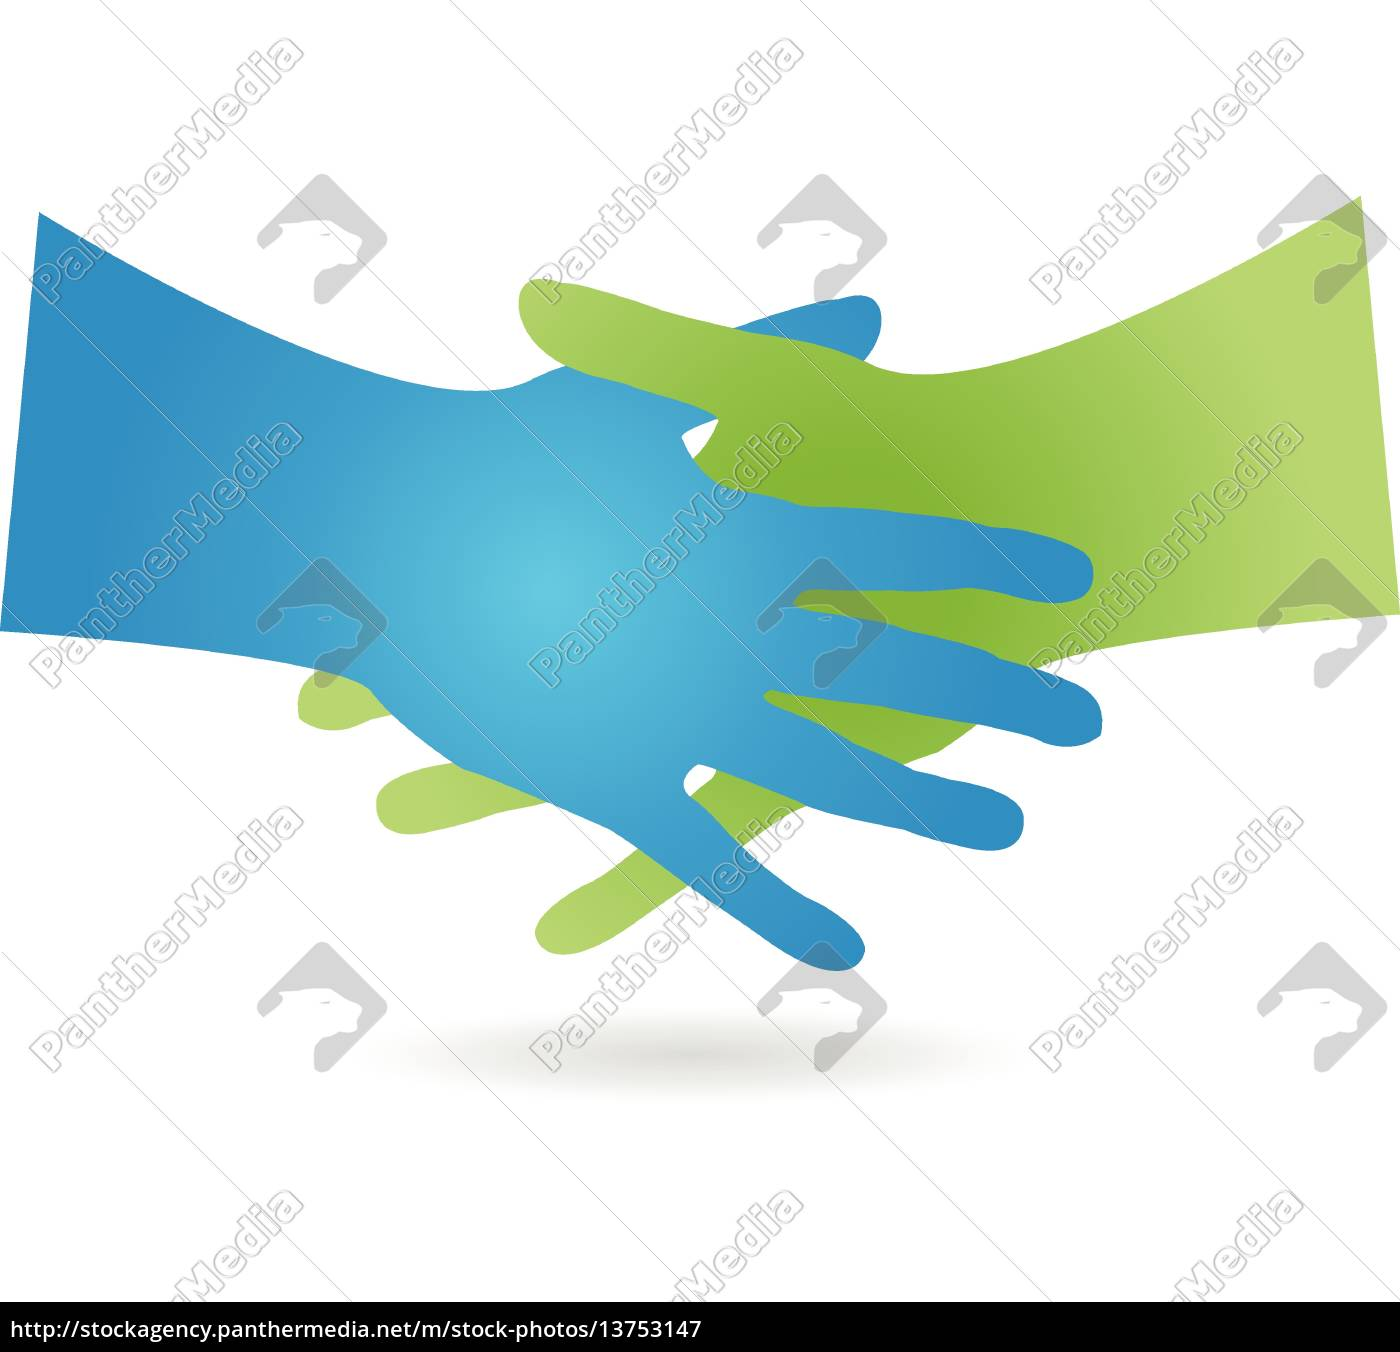 logo, handshake, two, hands - 13753147